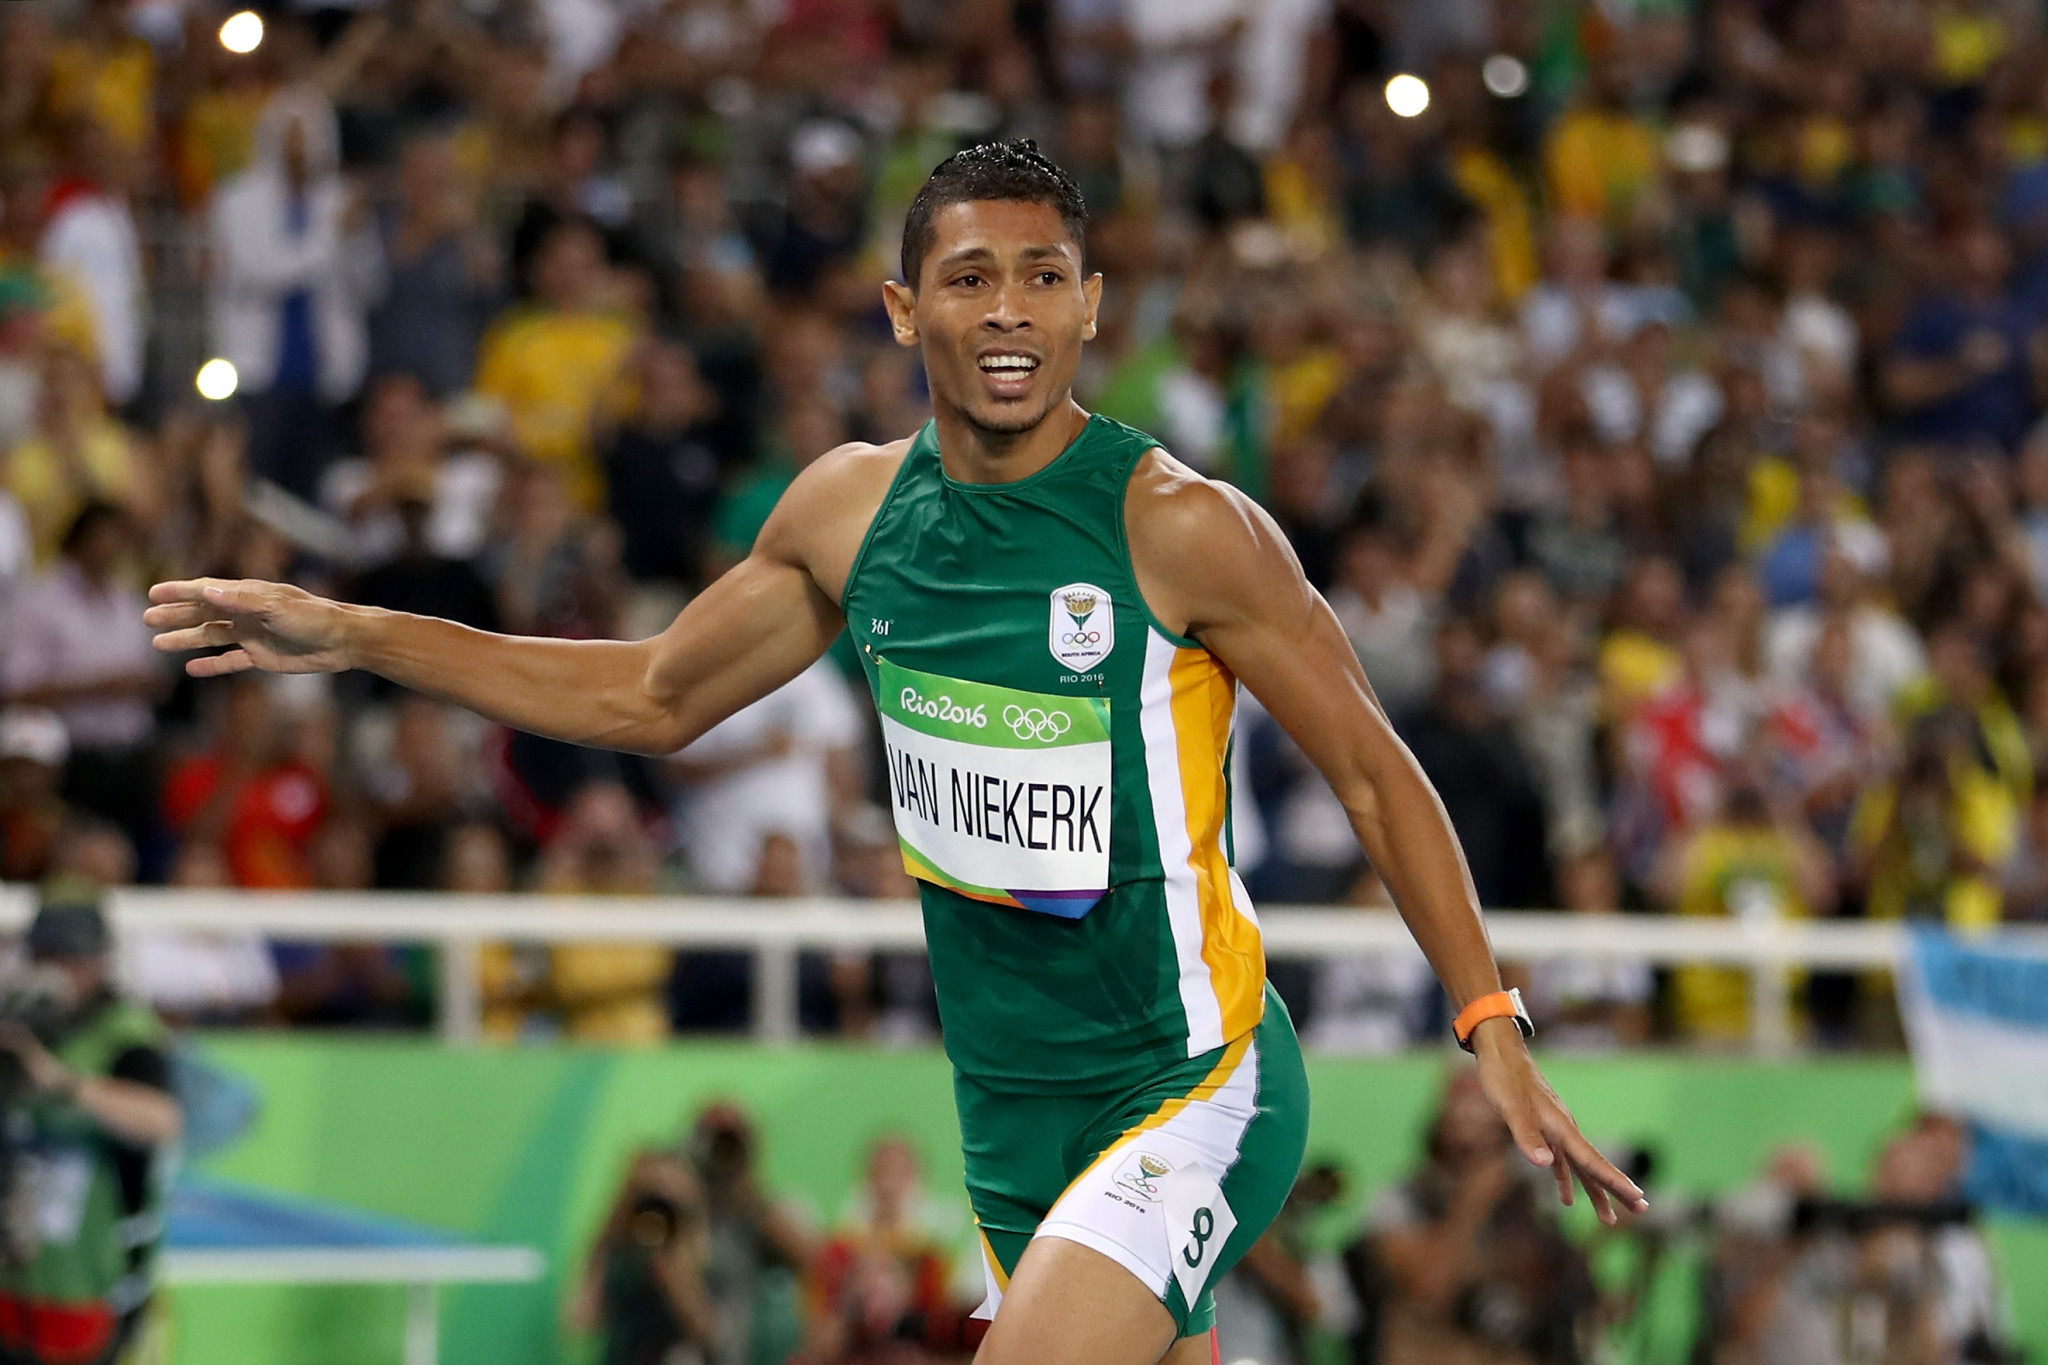 Wayde Van Niekerk was one of South Africa's two Olympic gold medallists at Rio 2016, when he broke the world record in the 400m and is hoping to return from injury in time for Tokyo 2020 ©Getty Images